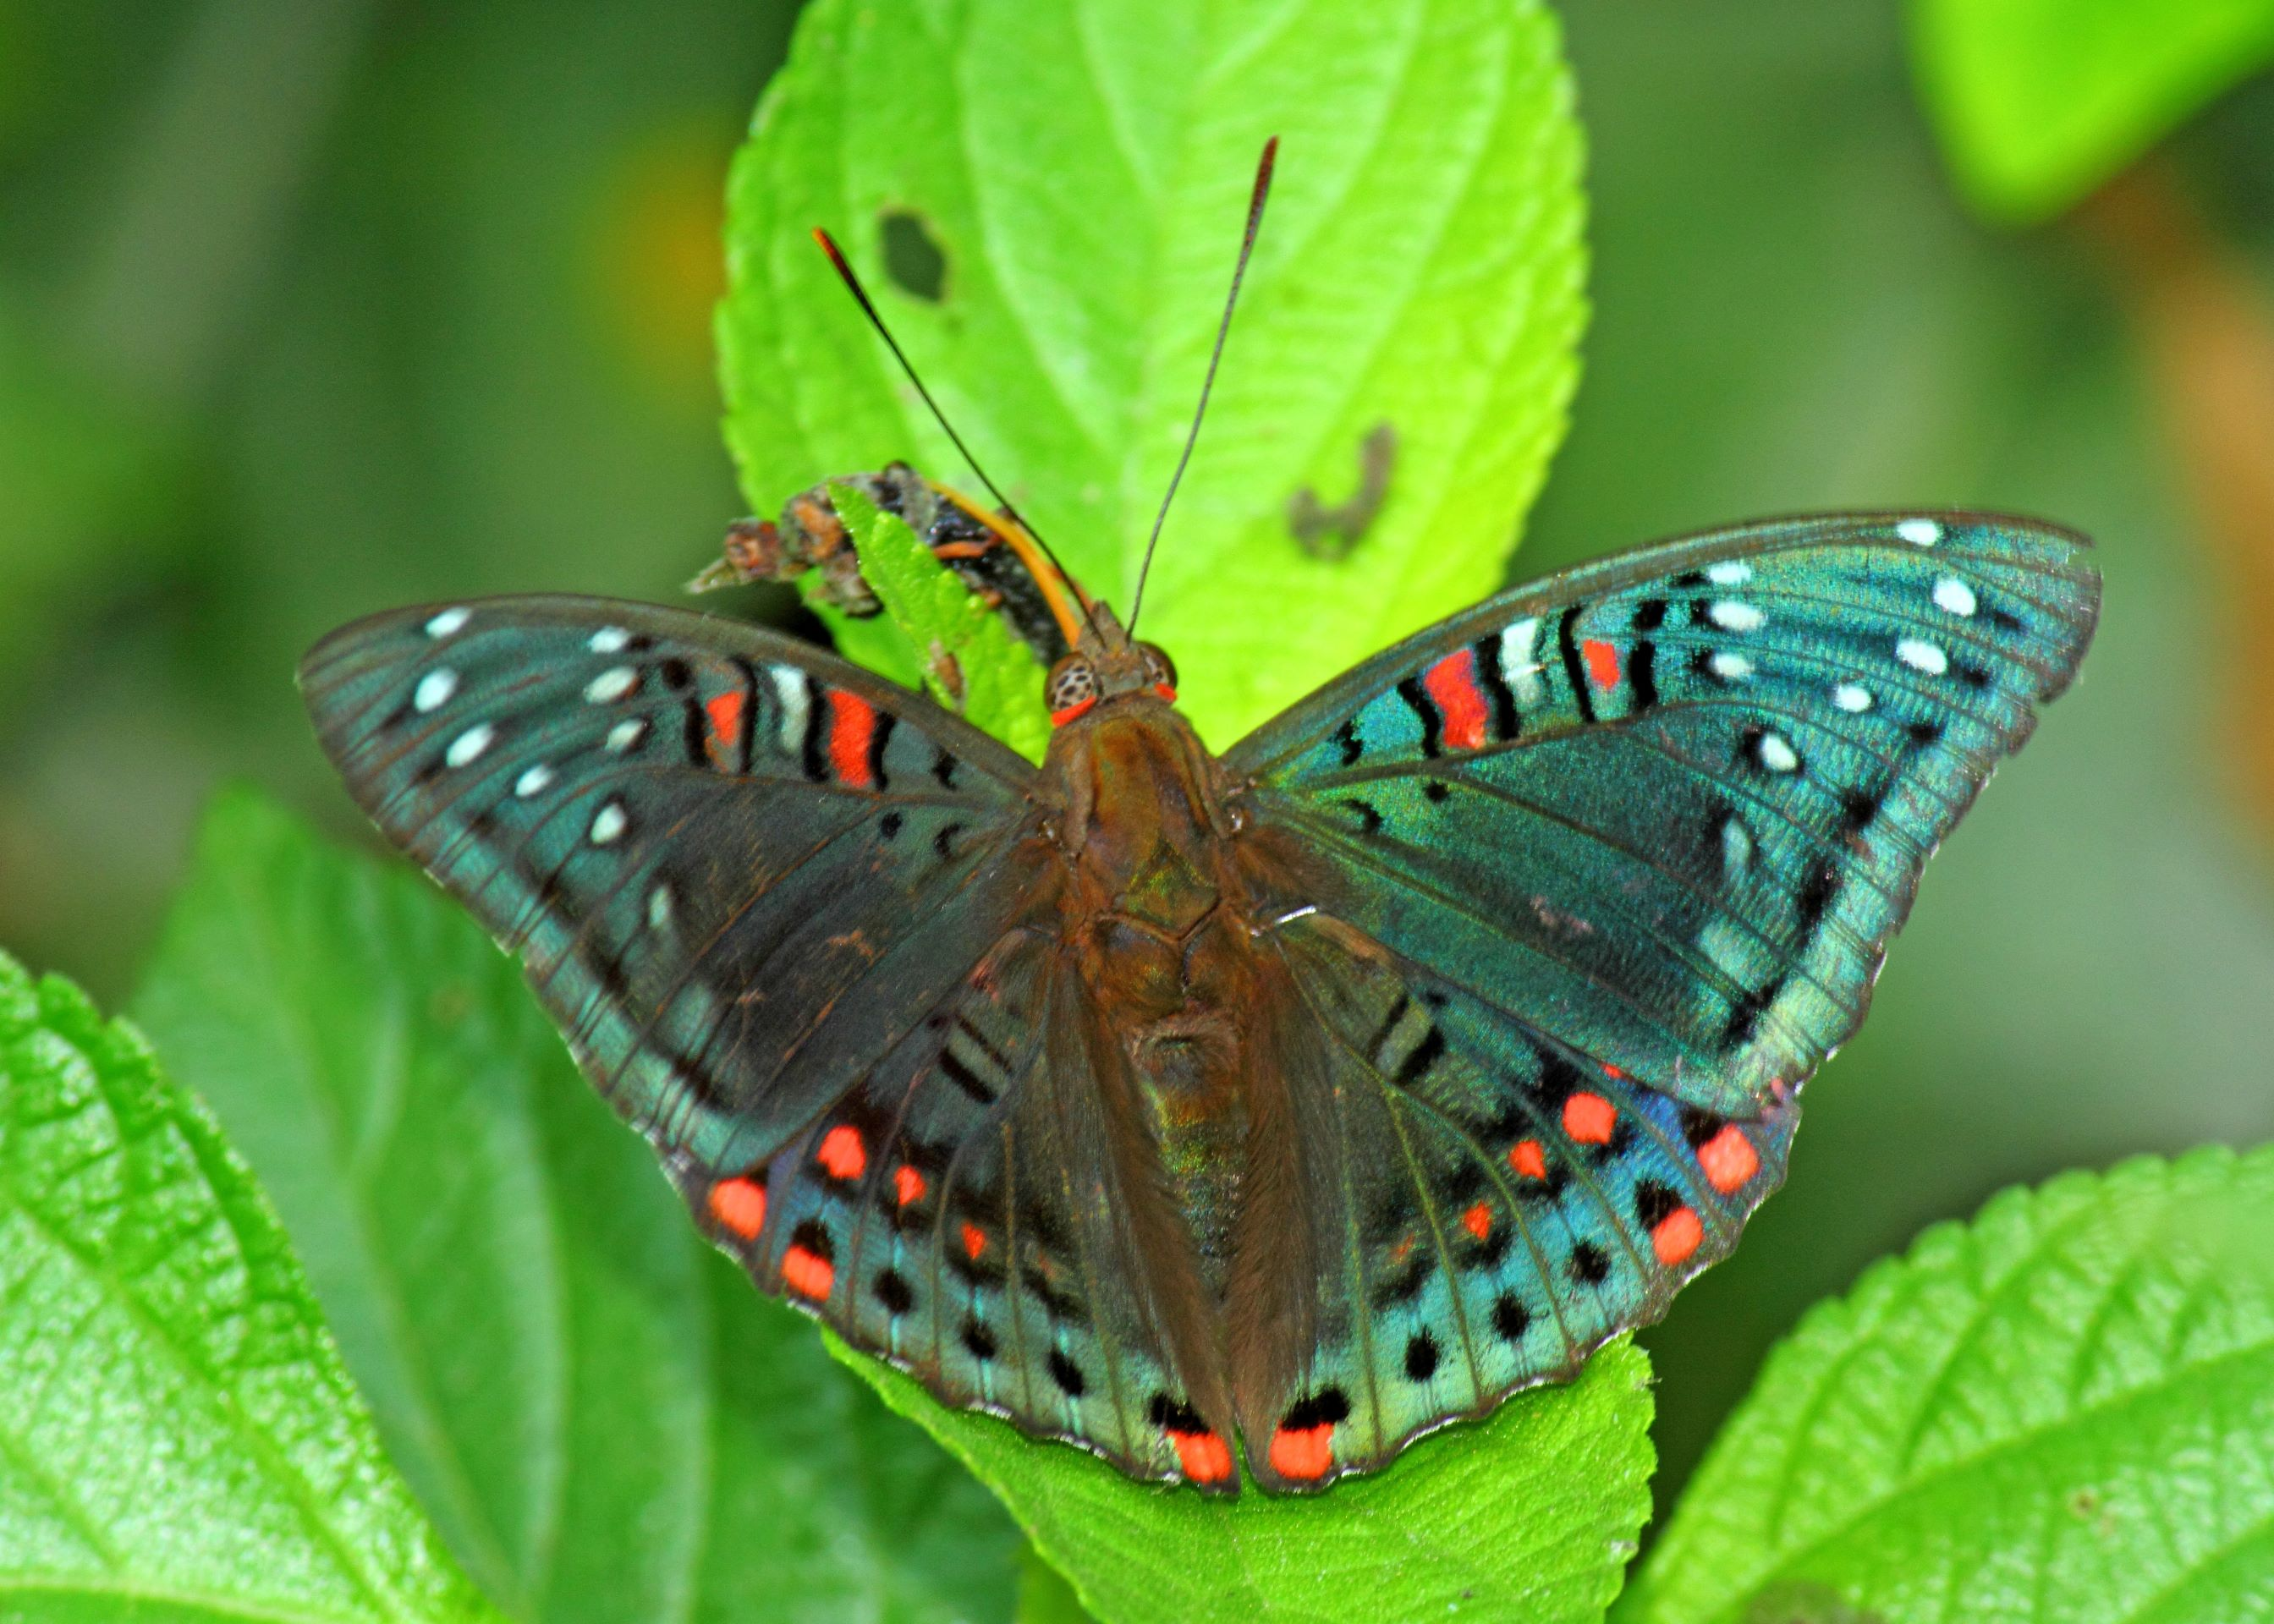 The gaudy baron is at its most brilliant when it is sitting on a leaf, basking with its wings open. Sayan Sanyal — CC BY-SA 4.0